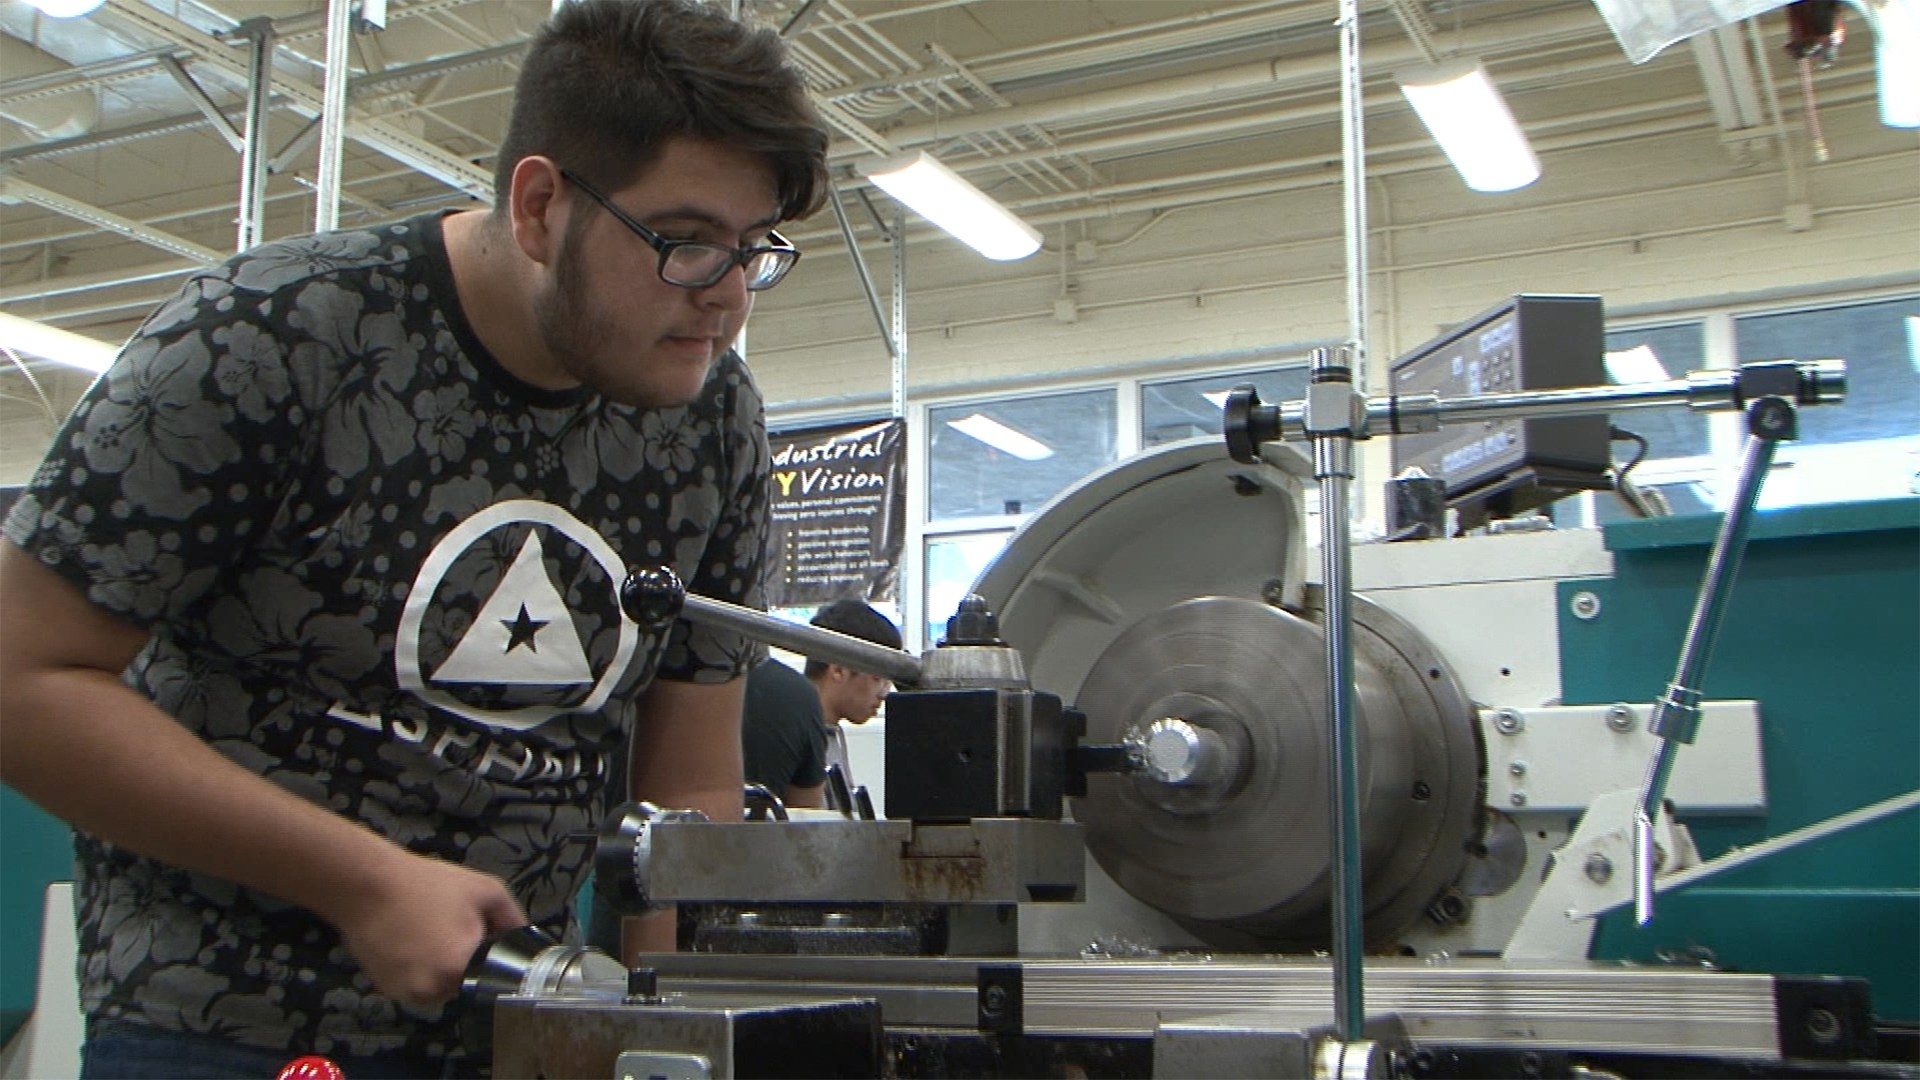 student using a machining tool in manufacturing class